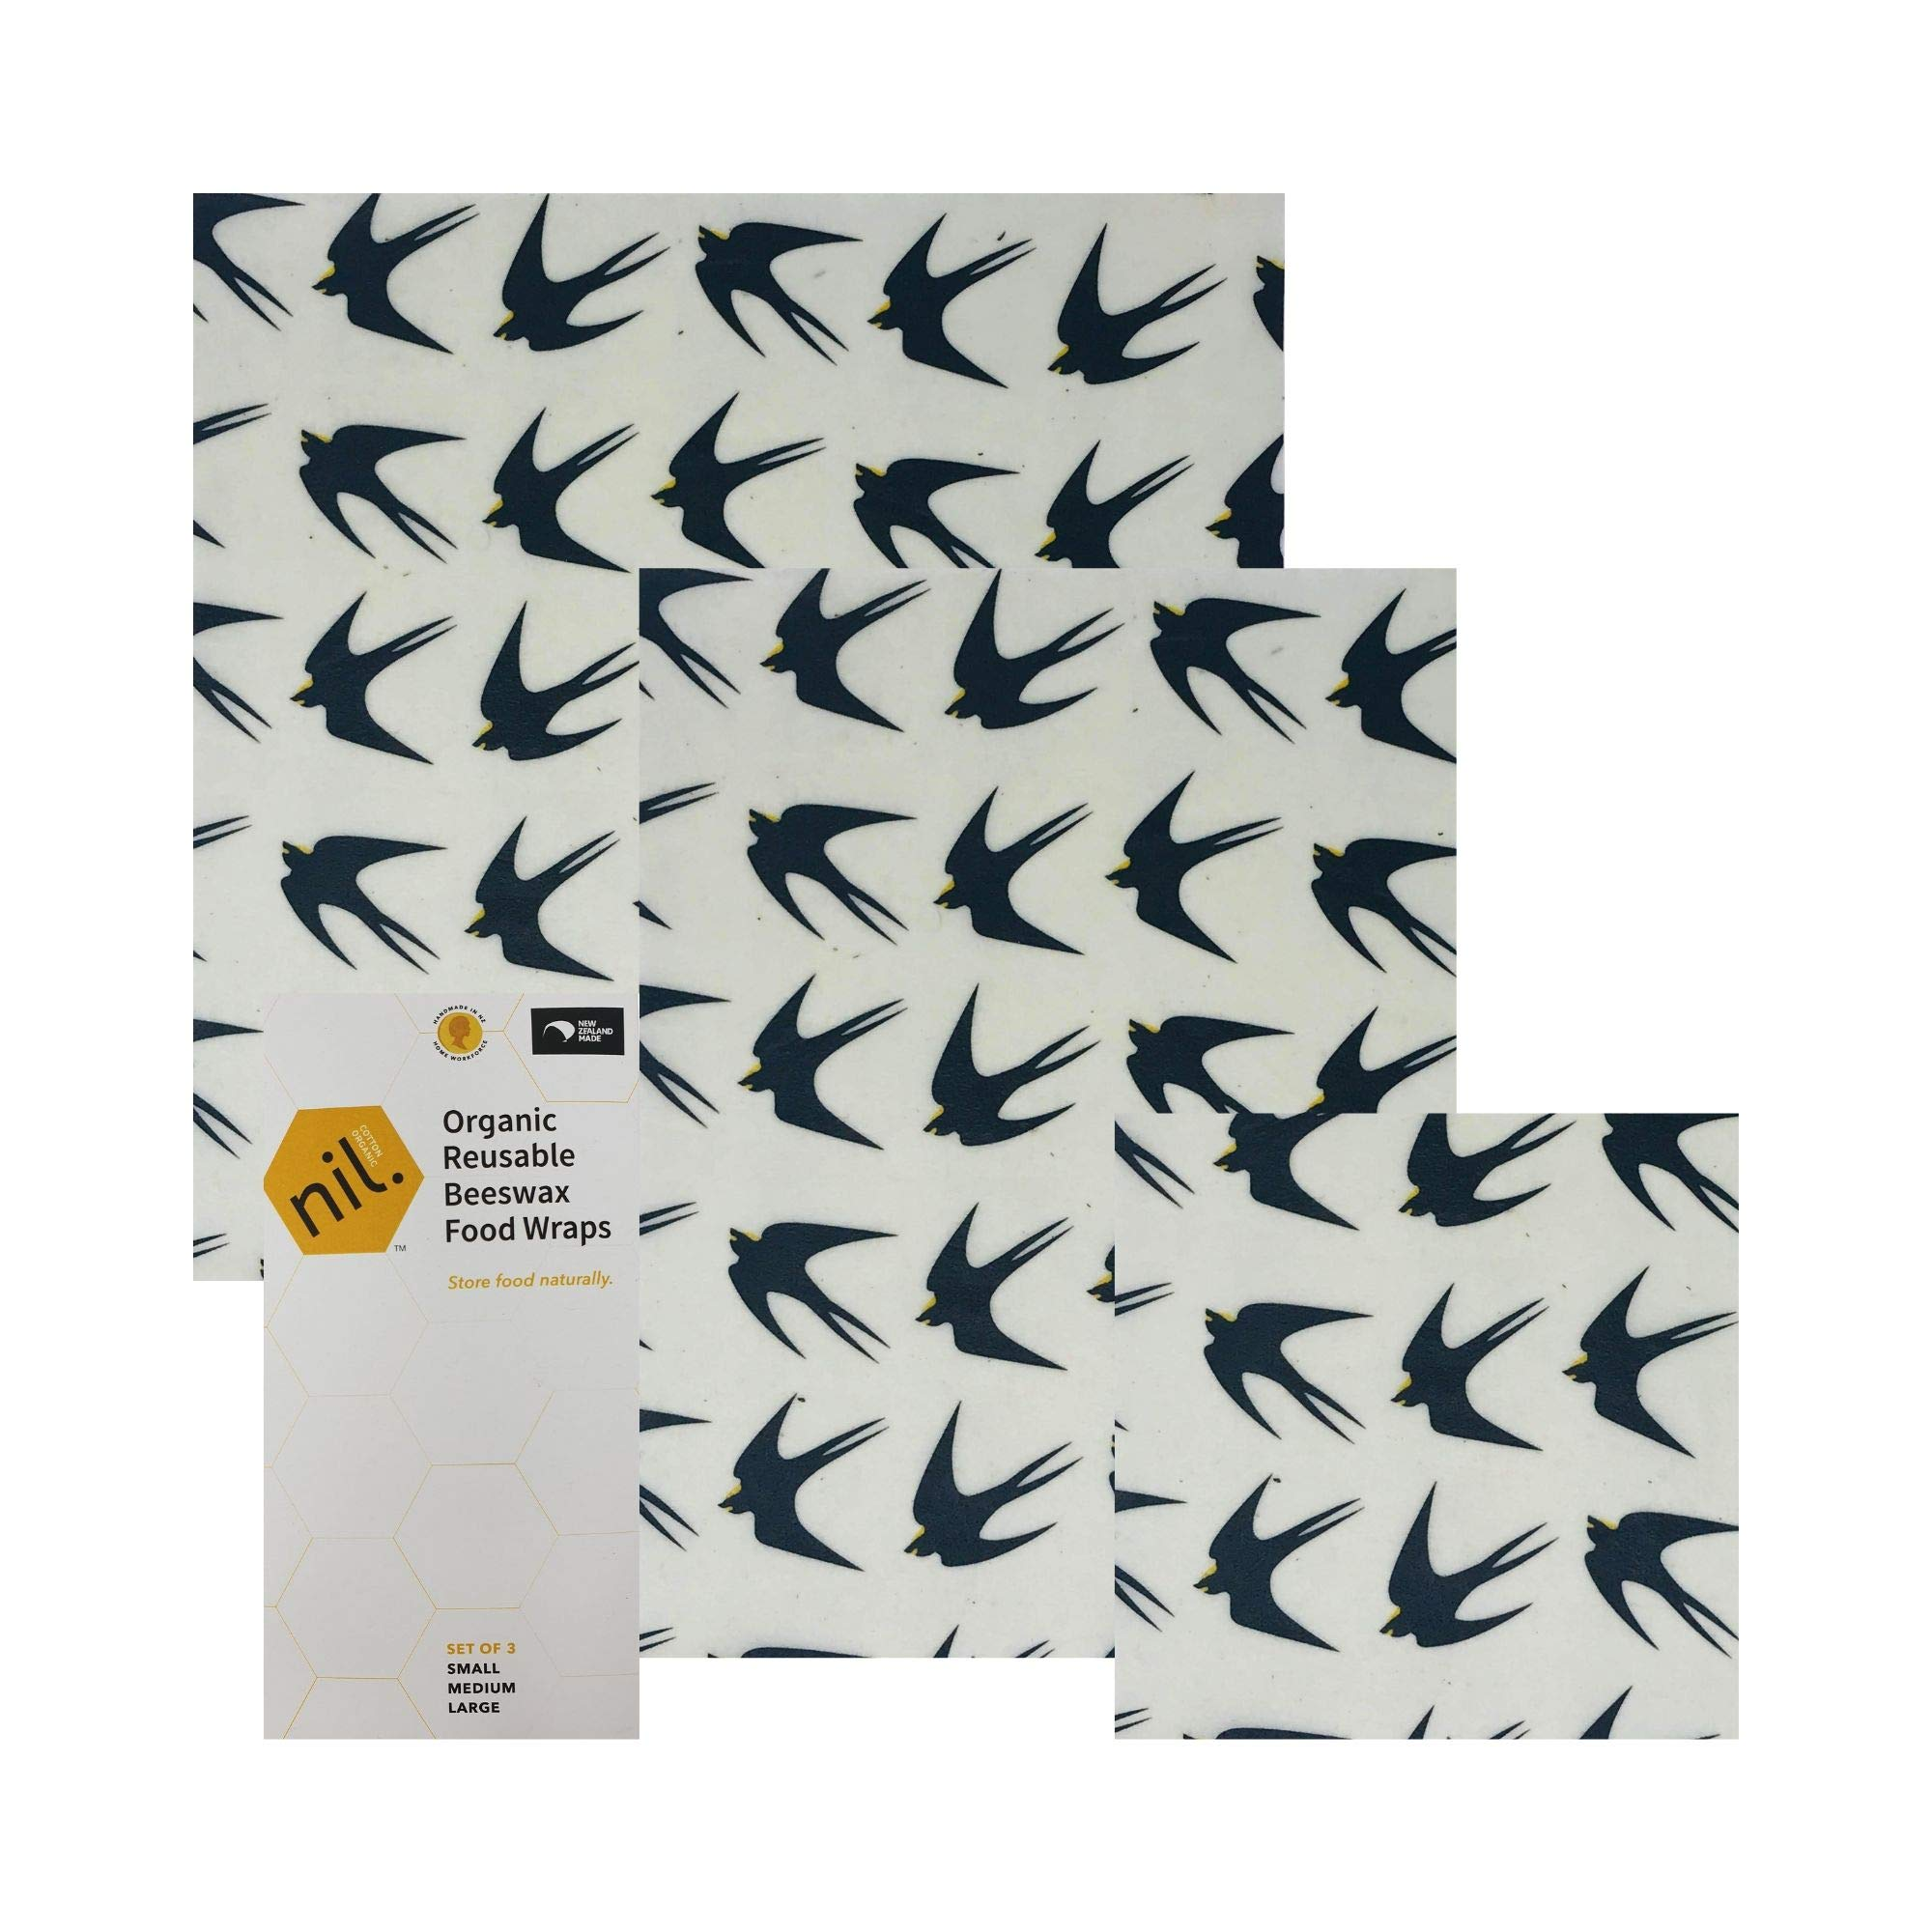 NIL beeswax food wrap - 3 pk reusable food wrap - no synthetic wax or chemicals - all organic and natural - holds up to a year - reusable beeswax food wraps with jojaba and manuka oil (Black bird)